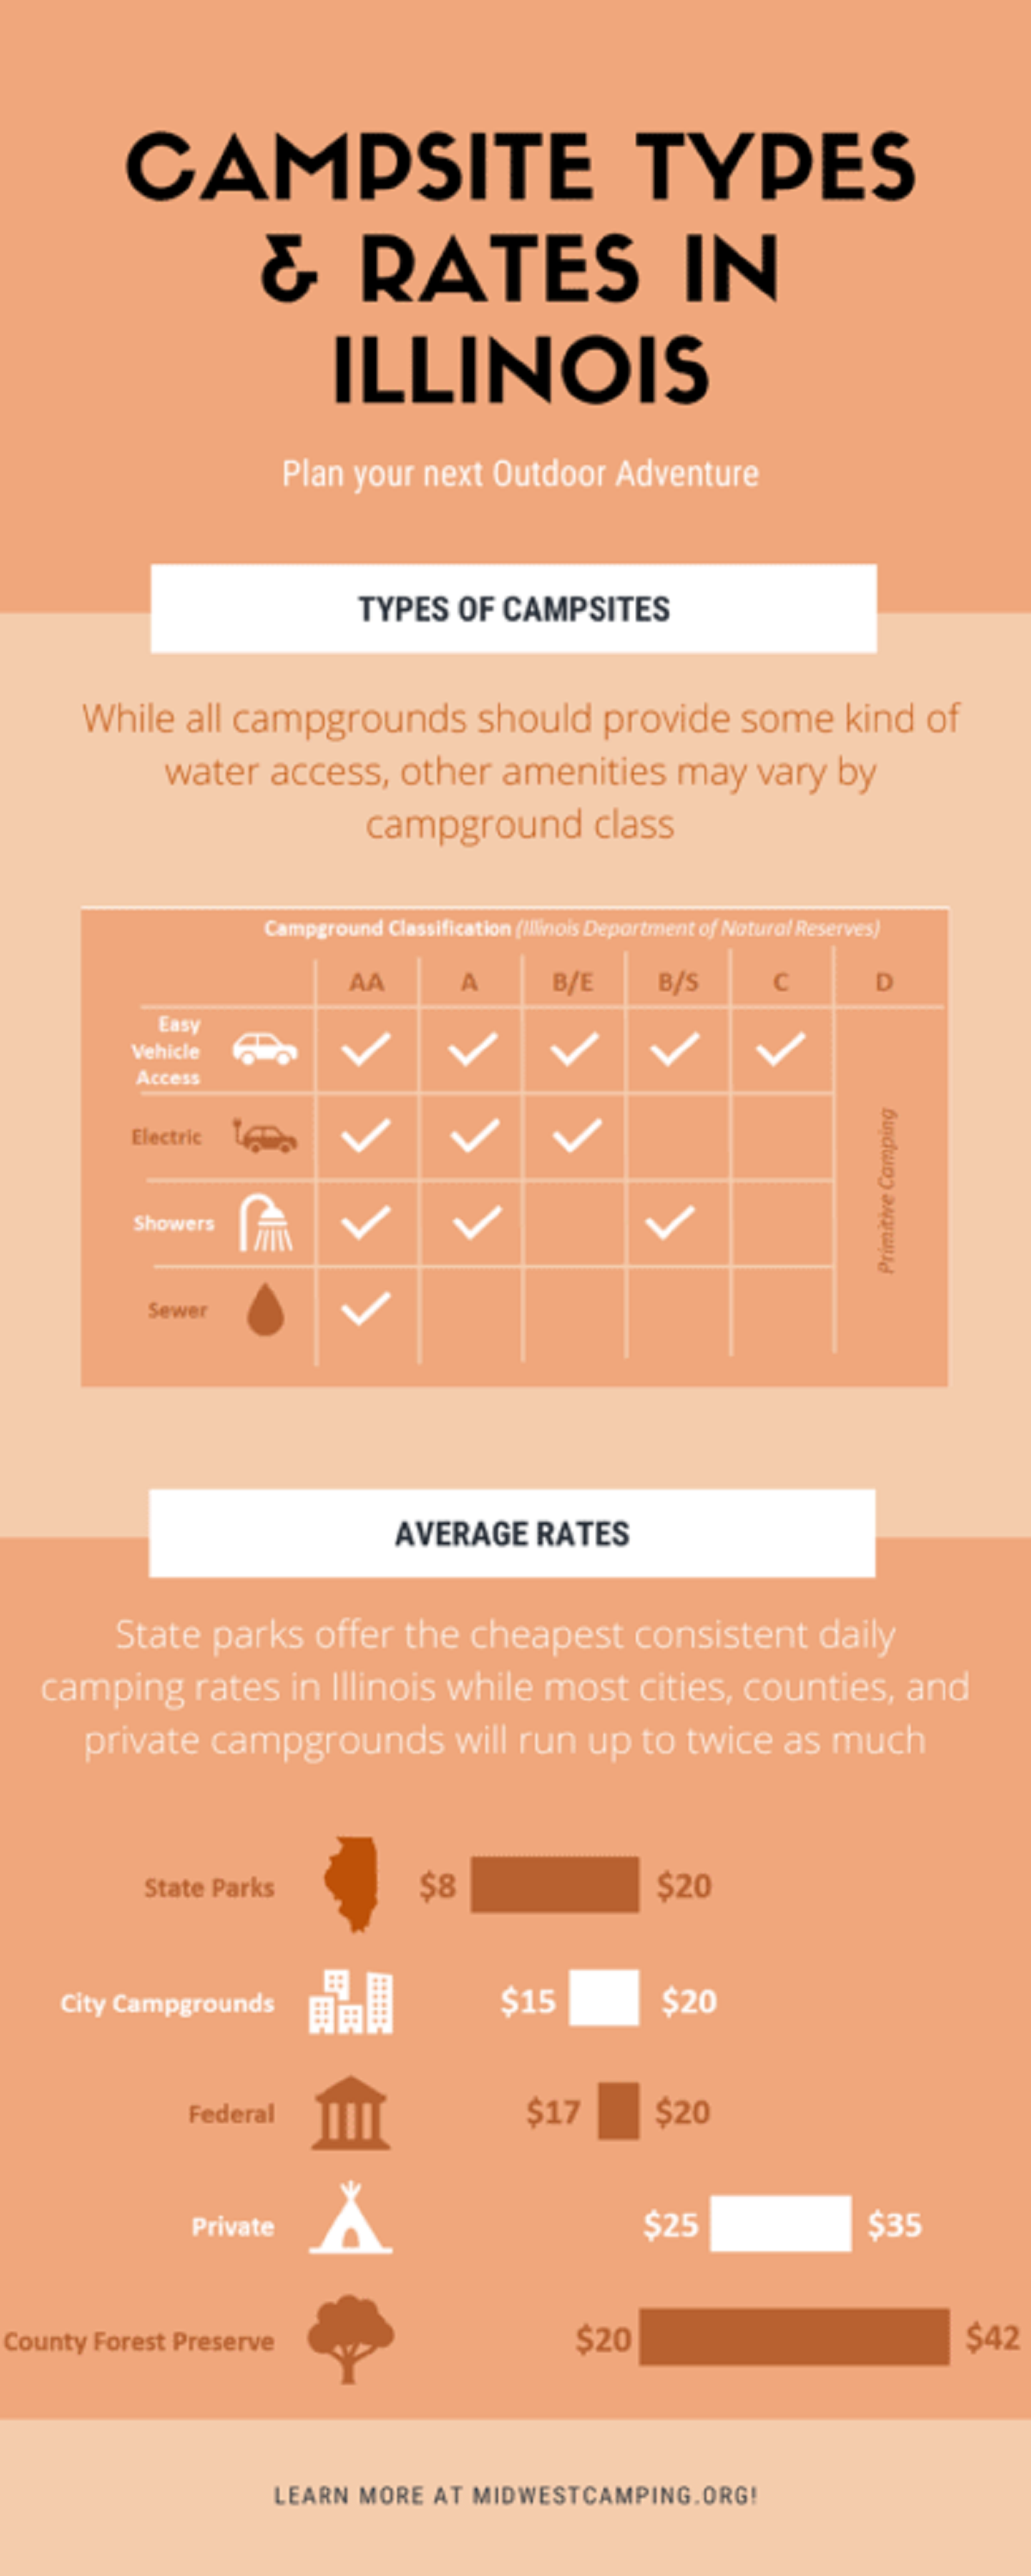 How Much Does It Cost To Camp In Illinois? #infographic